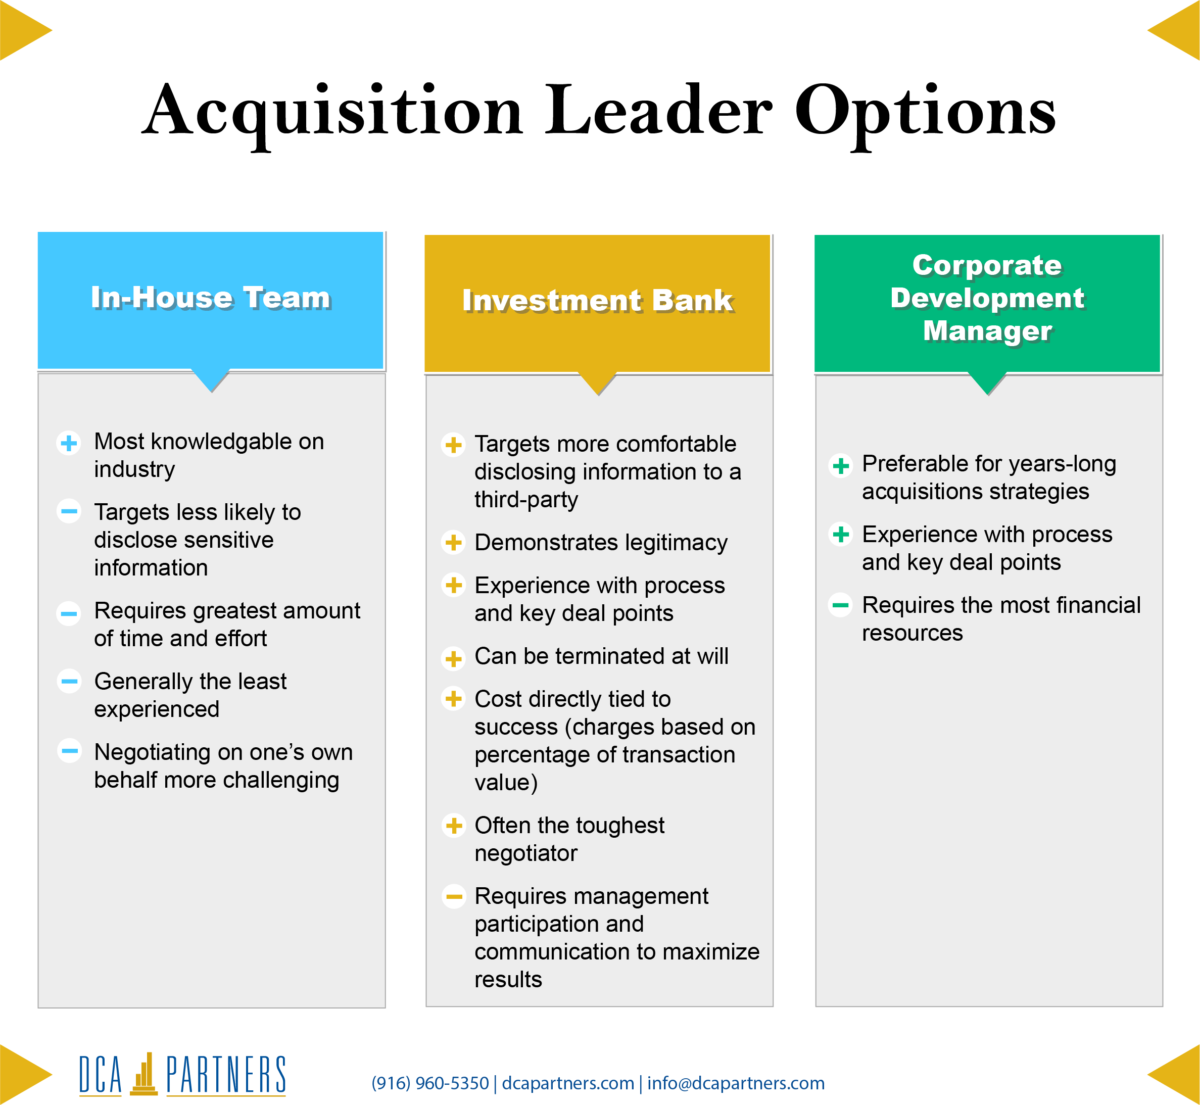 Acquisition Leader Options